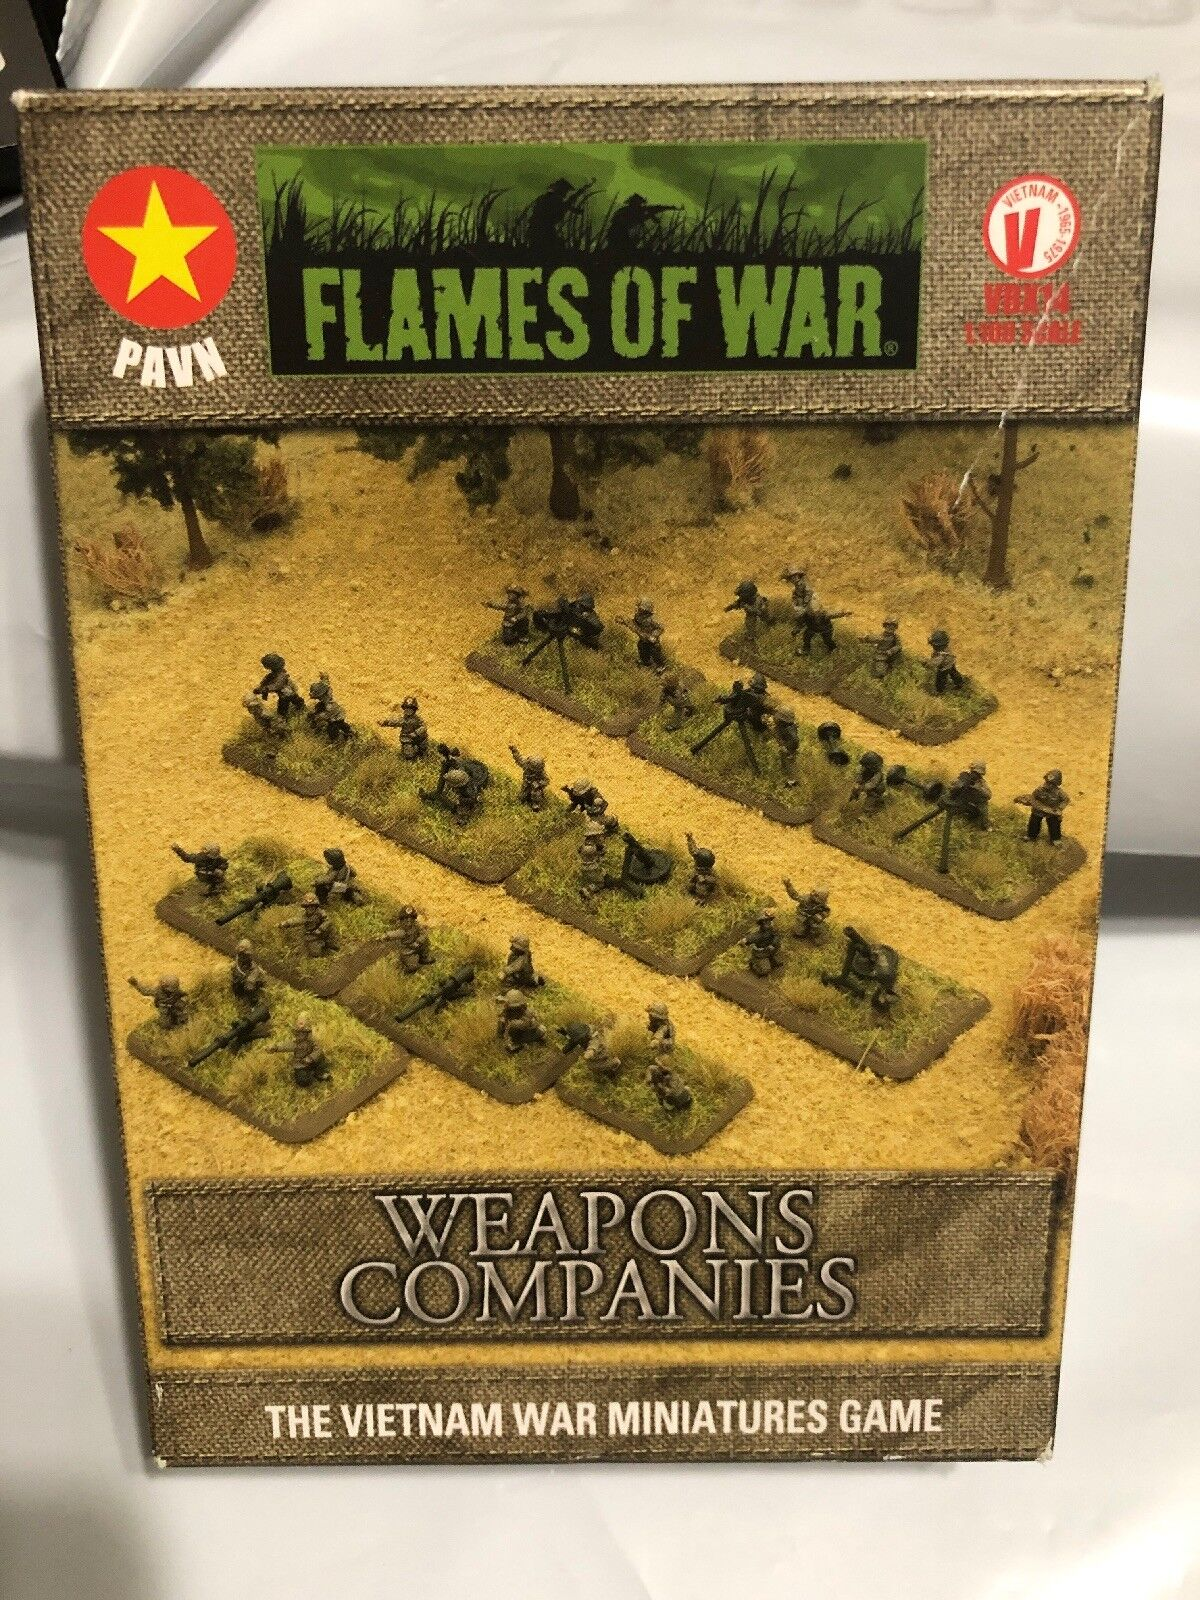 FLAMES OF WAR VBX14 WEAPONS COMPANIES